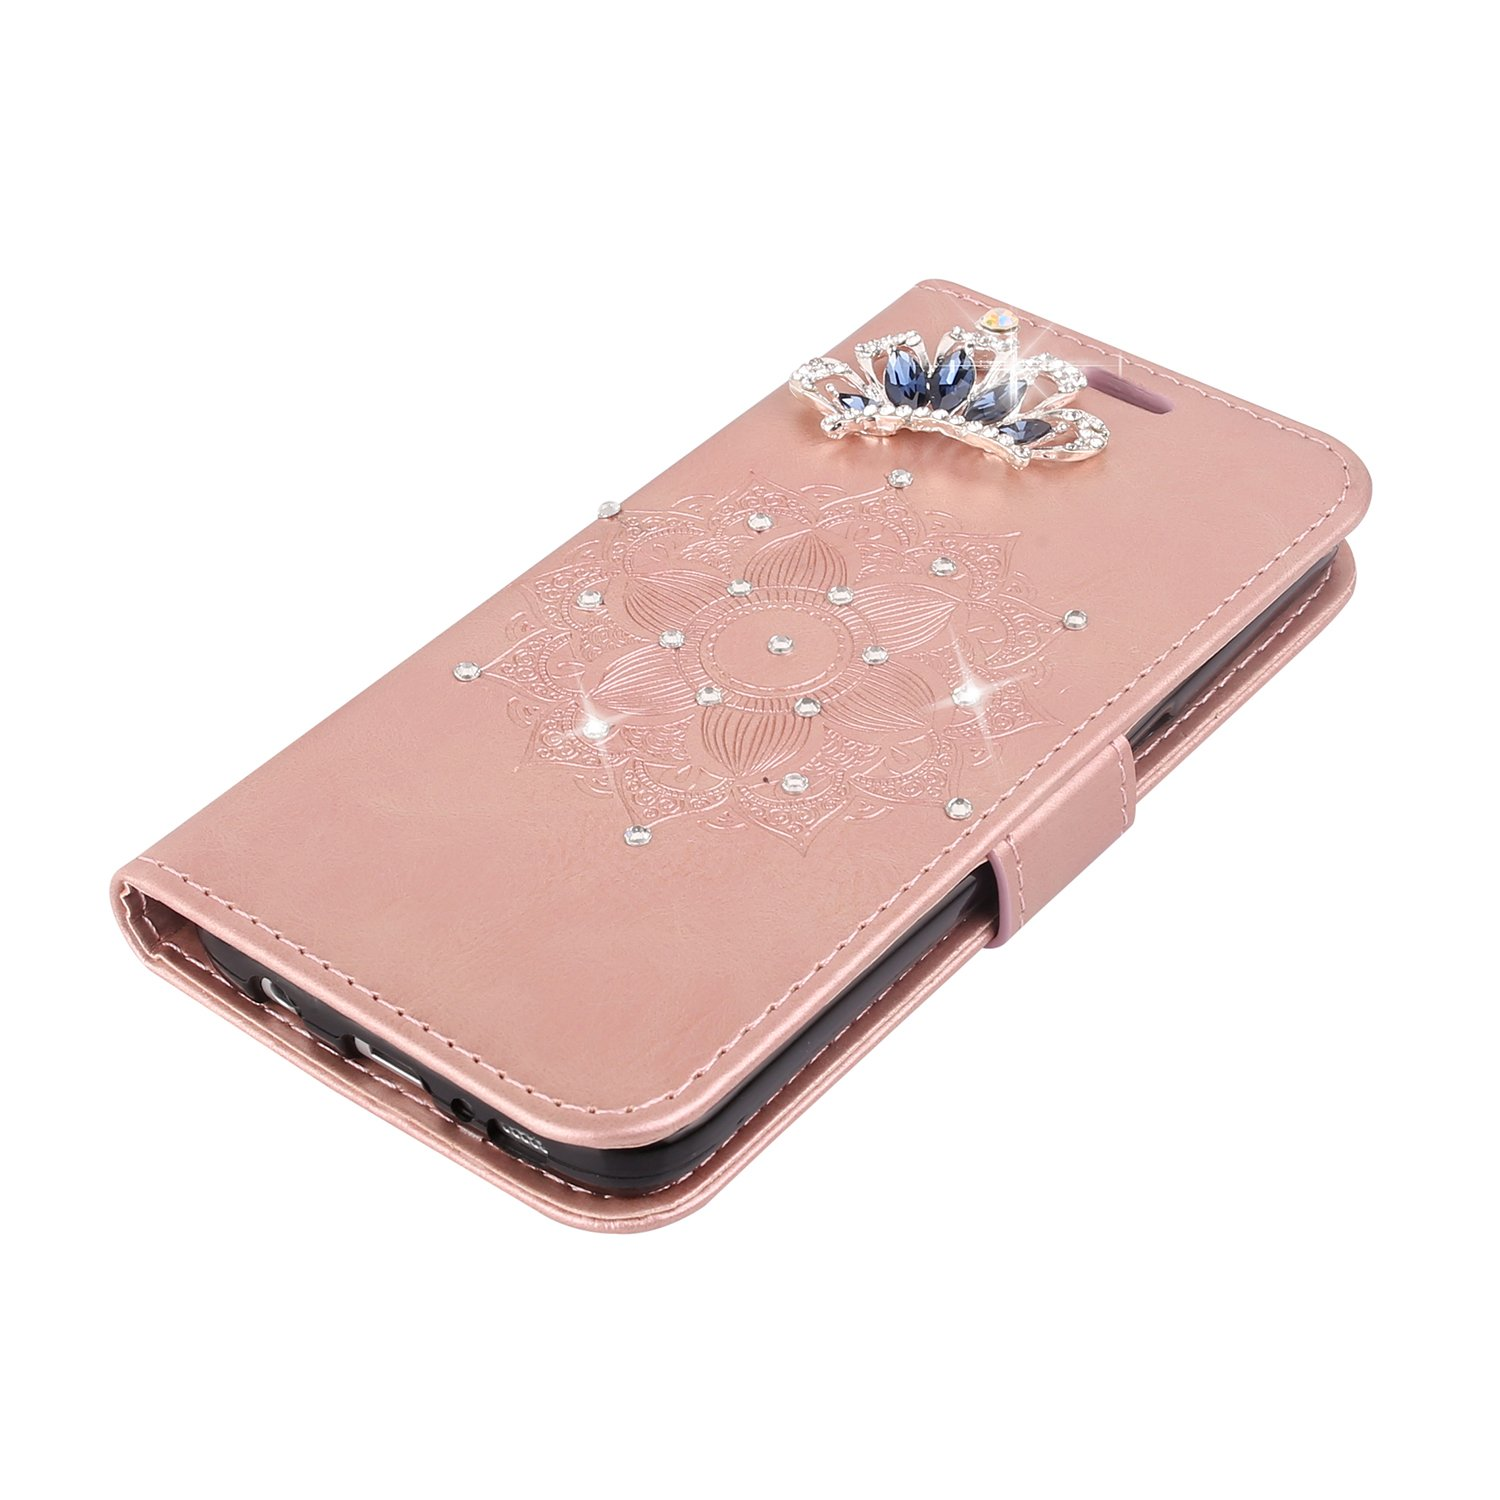 IKASEFU LG G4 Case,Clear Crown Rhinestone Diamond Bling Glitter Wallet with Card Holder Emboss Mandala Floral Pu Leather Magnetic Flip Case Protective Cover for LG G4,Rosa Gold by IKASEFU (Image #4)